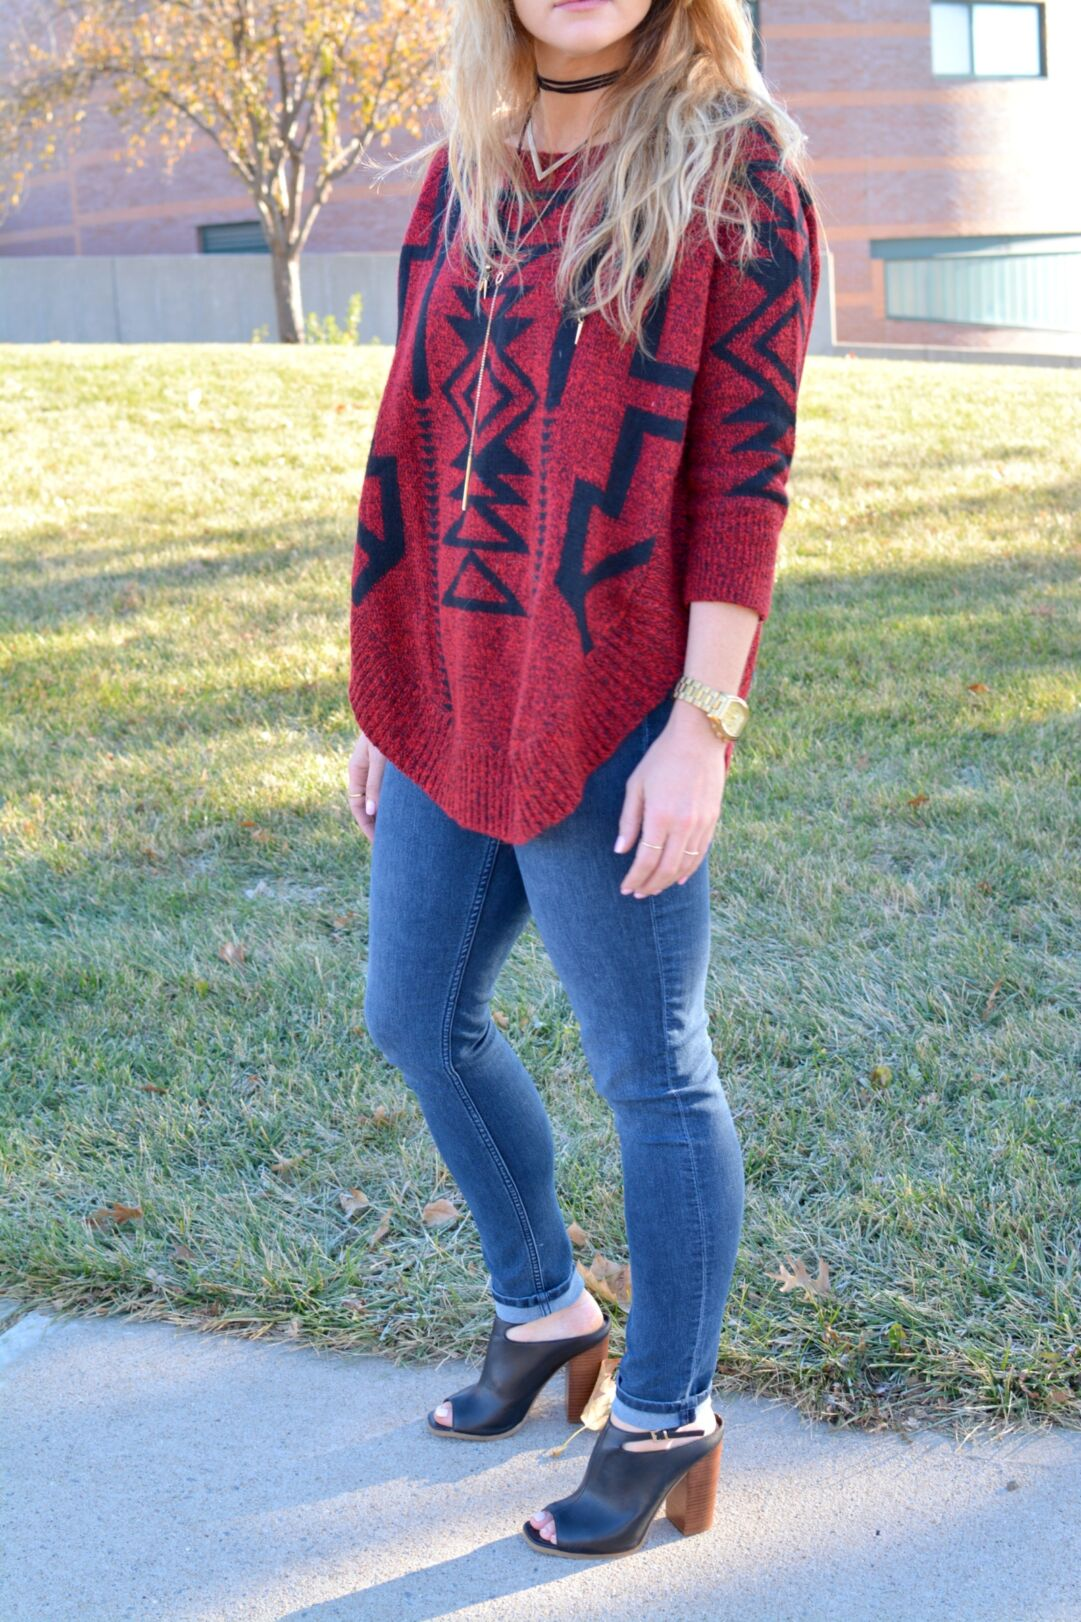 83578b3d40 Ashley from LSR in a red and black sweater with leather mules